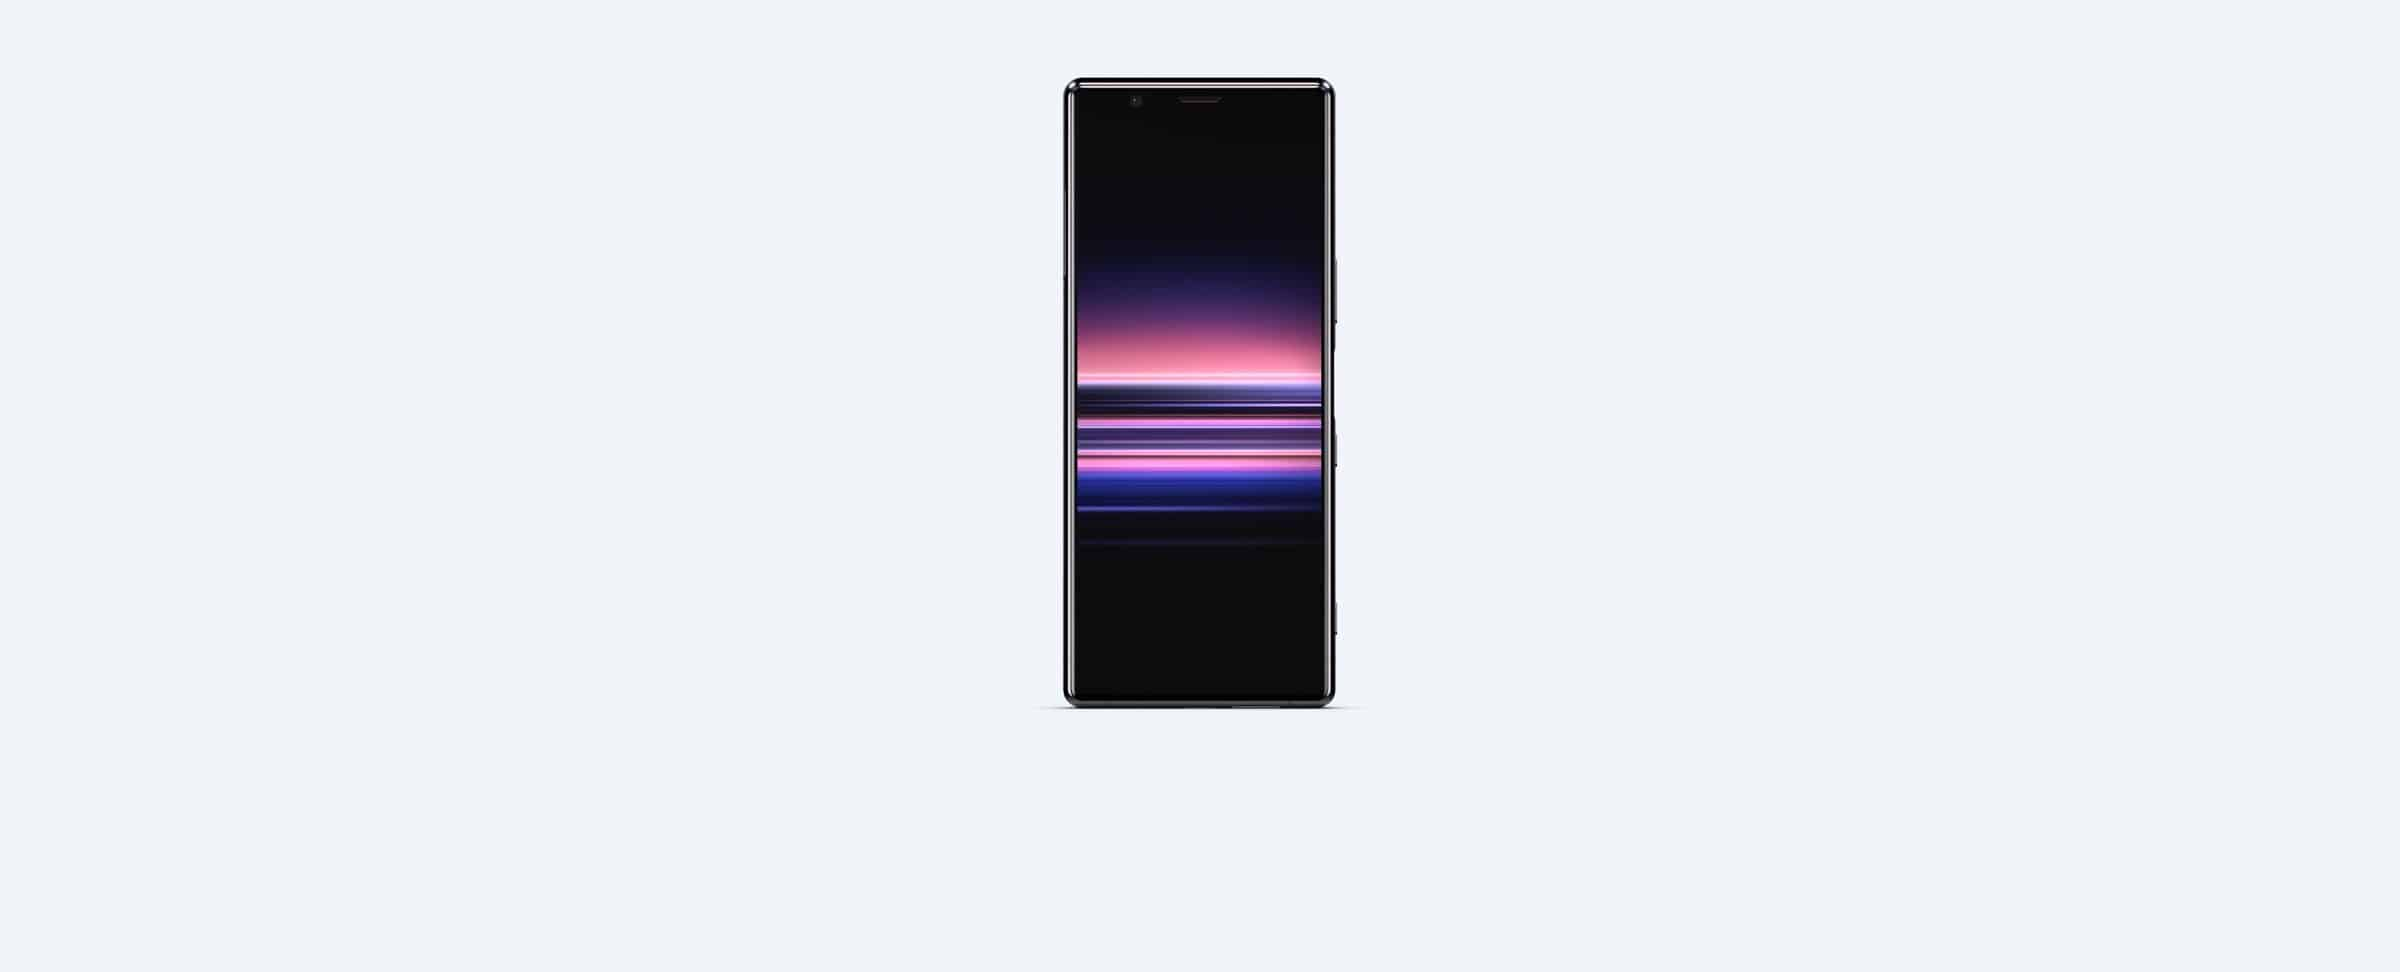 Sony Xperia 5 official image 5